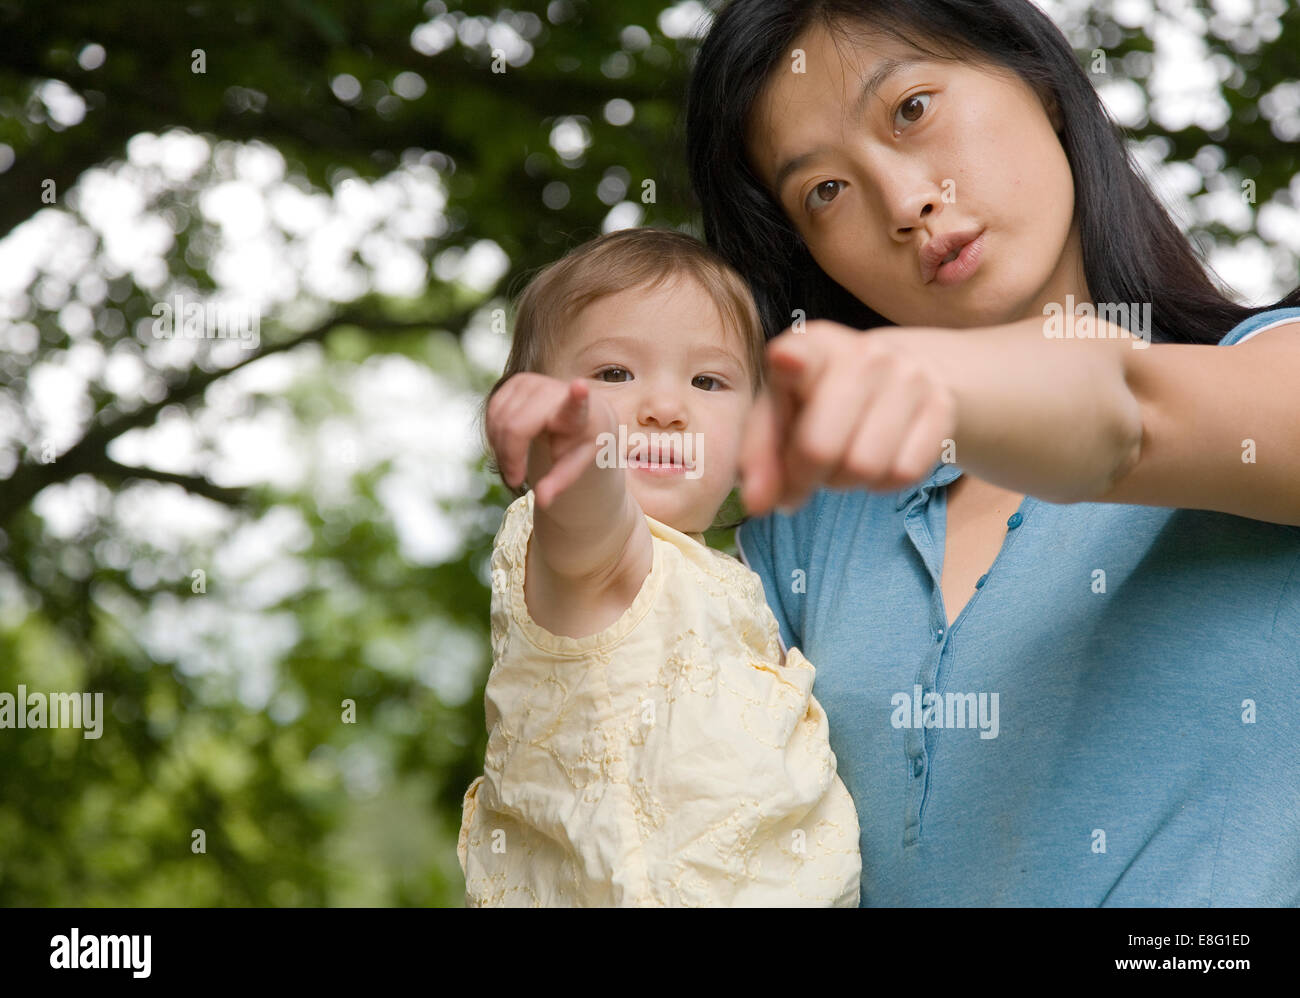 a mixed ethnicity (East Asian / caucasian) female toddler being held in the arm of her Korean East Asian mother, - Stock Image